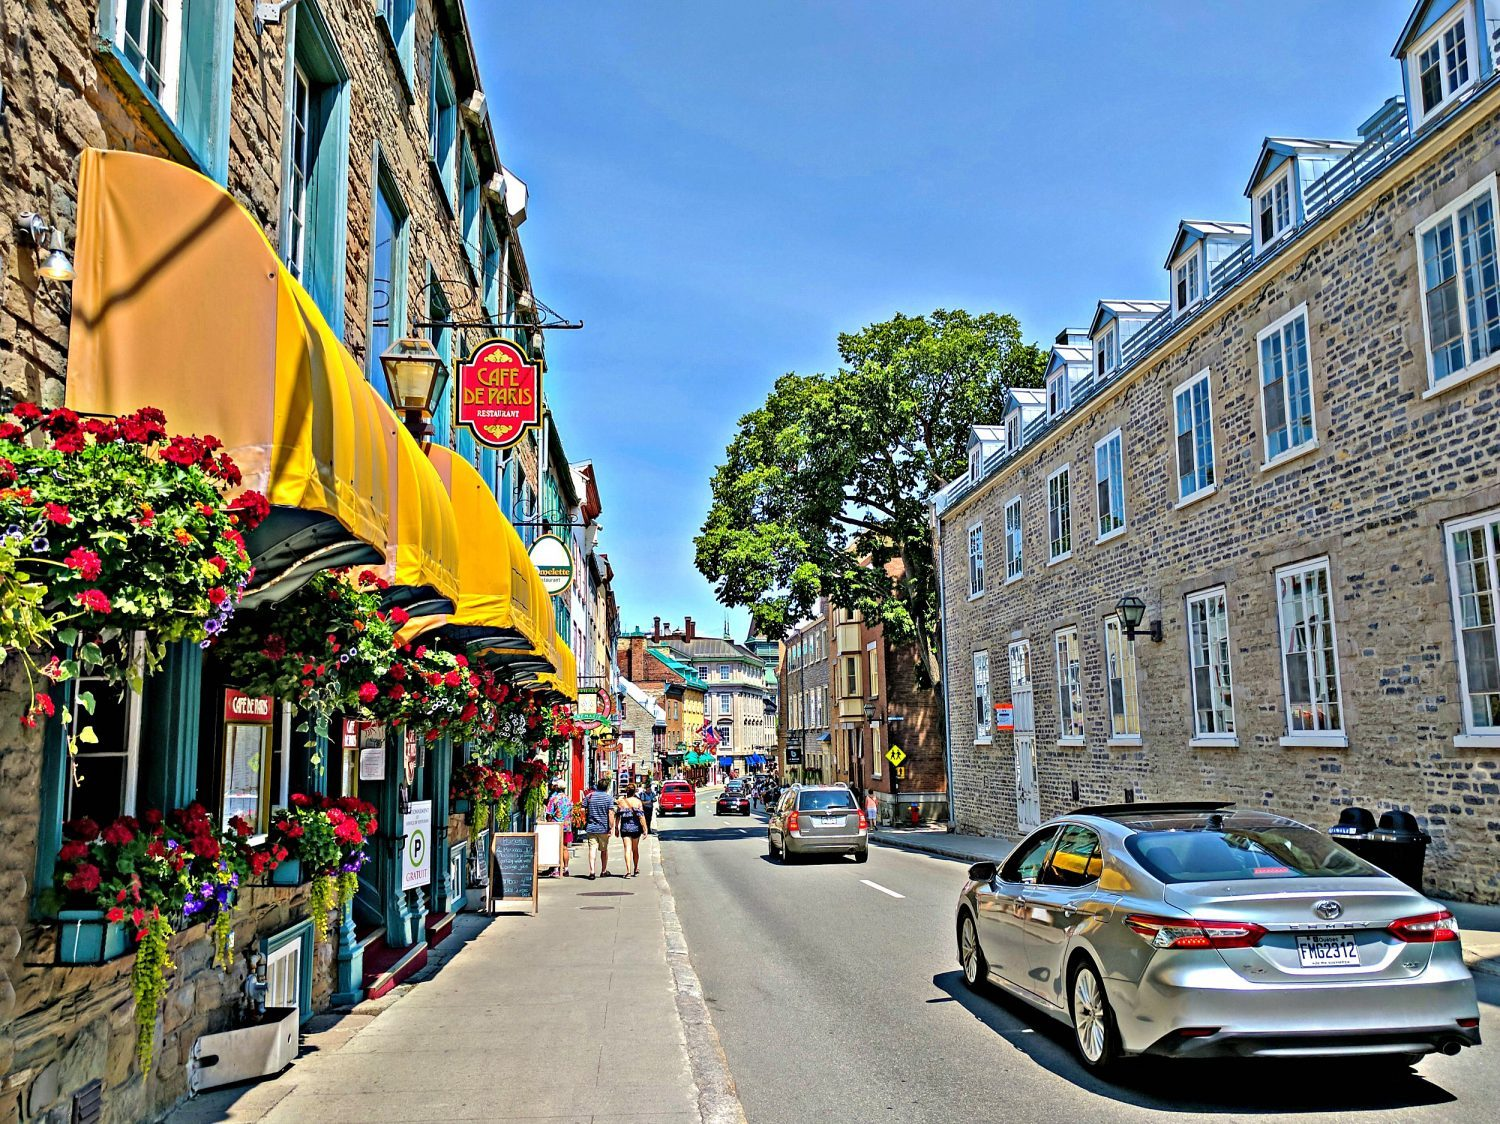 Road trip to the province of Quebec. Old town Quebec City.